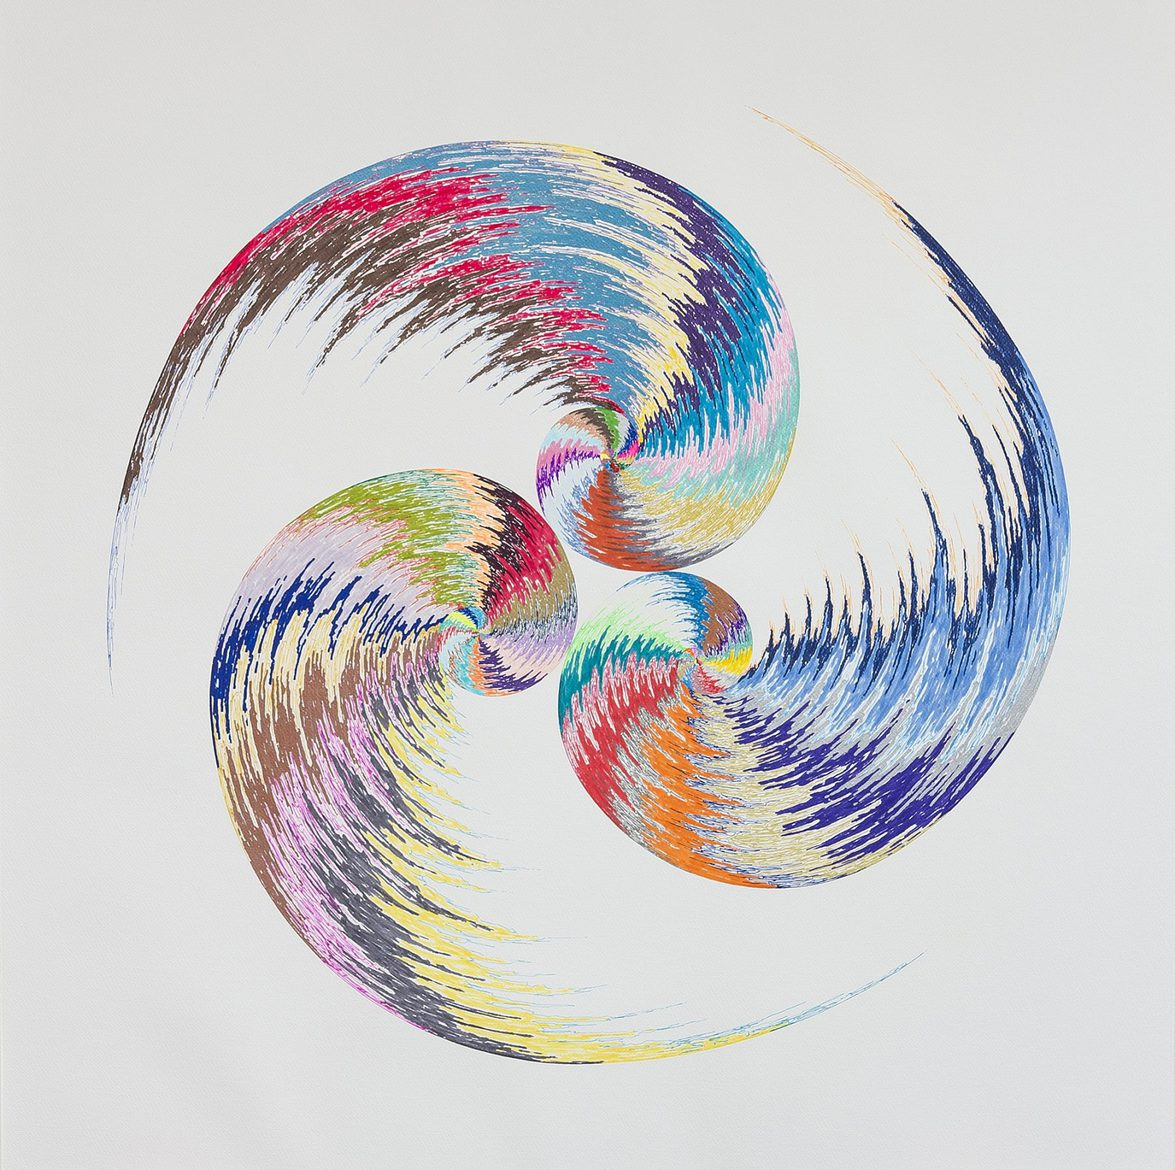 Kevin Osmond, 'Golden Spiral #9', 2014, Coloured pens on ʻWhite' 300gsm archival paper (Original drawing signed and dated on verso), 85 x 85cm